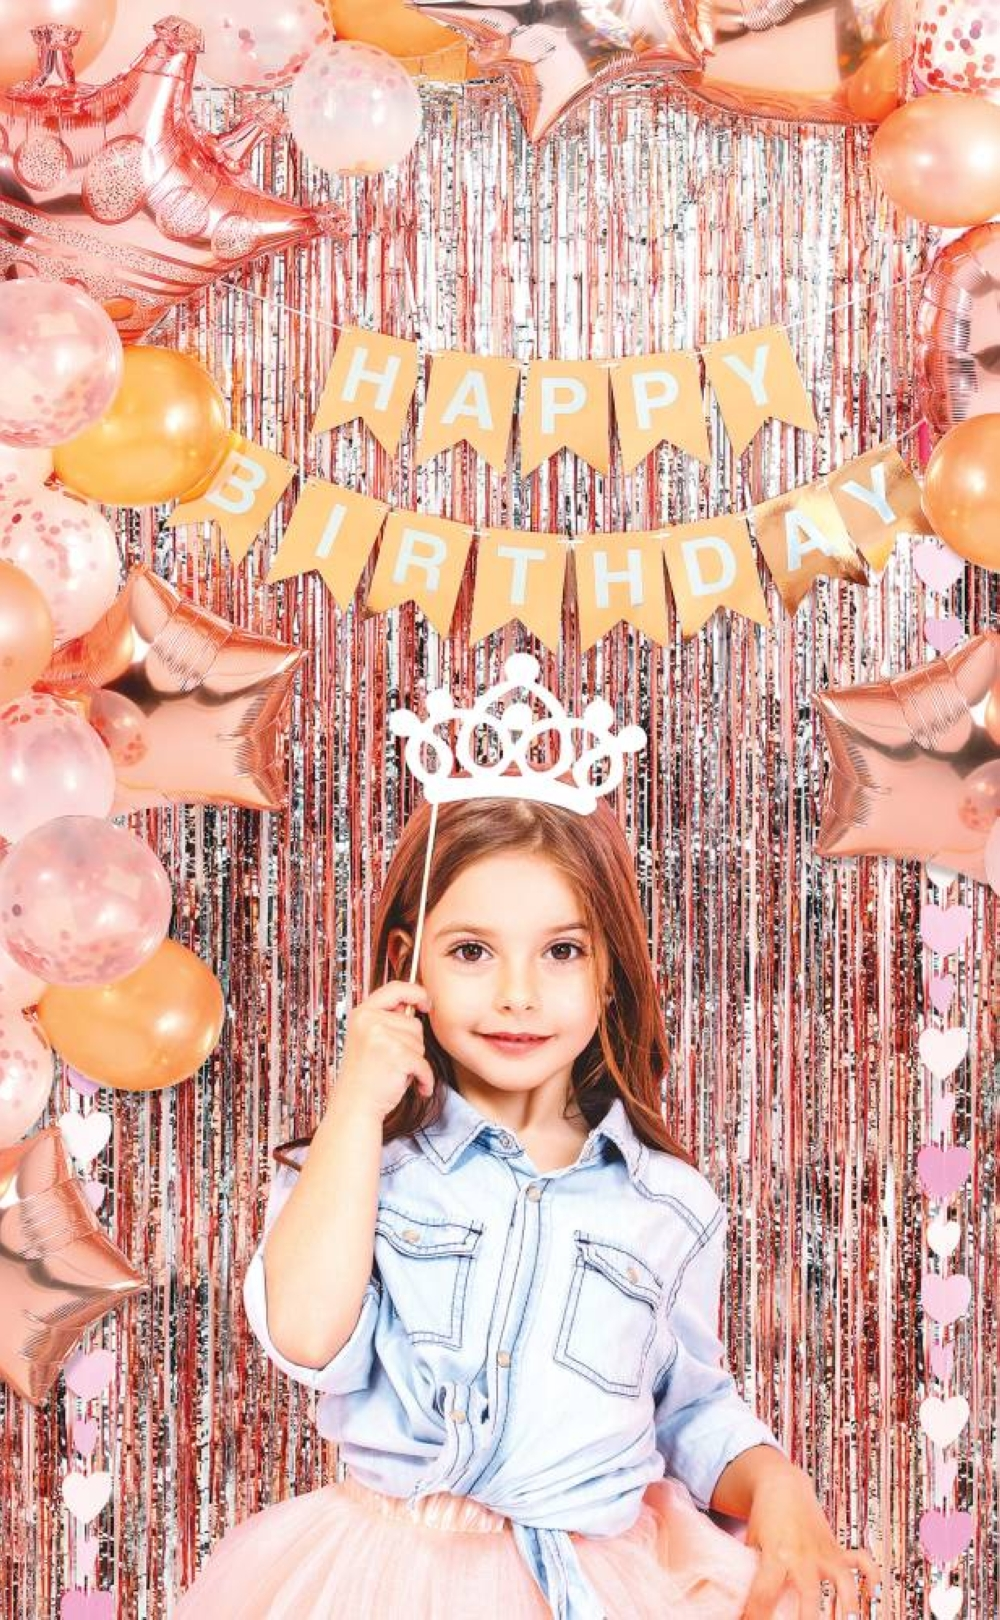 Make your little girl's fairytale dream come true with Princess-themed party accessories.